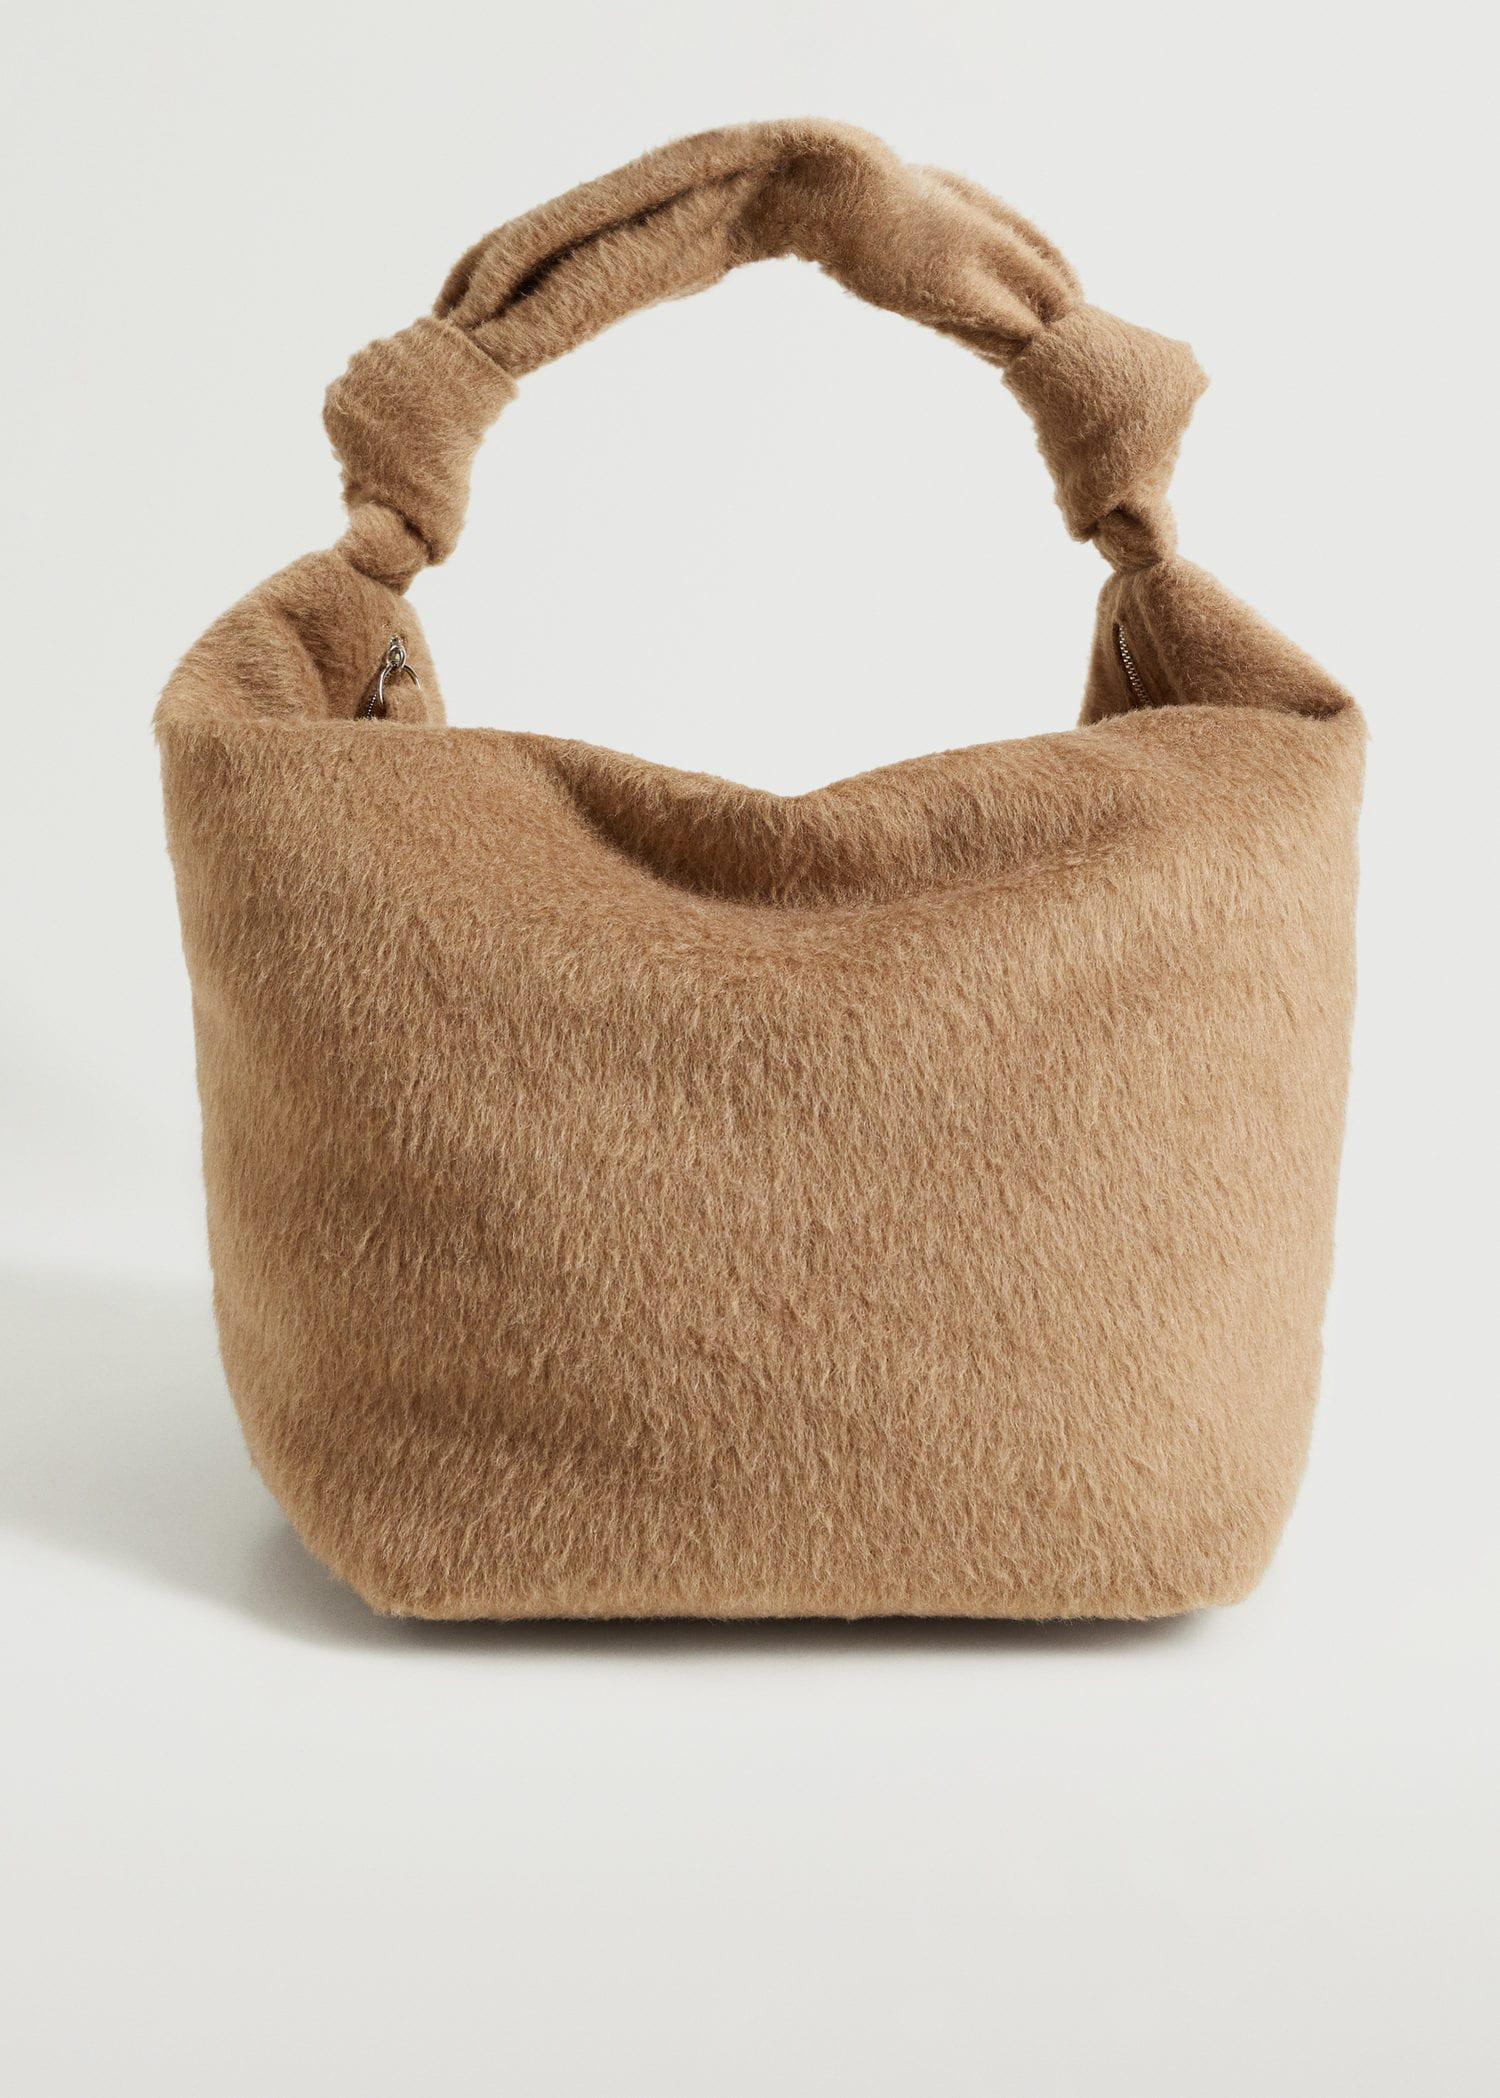 Bag with knot strap